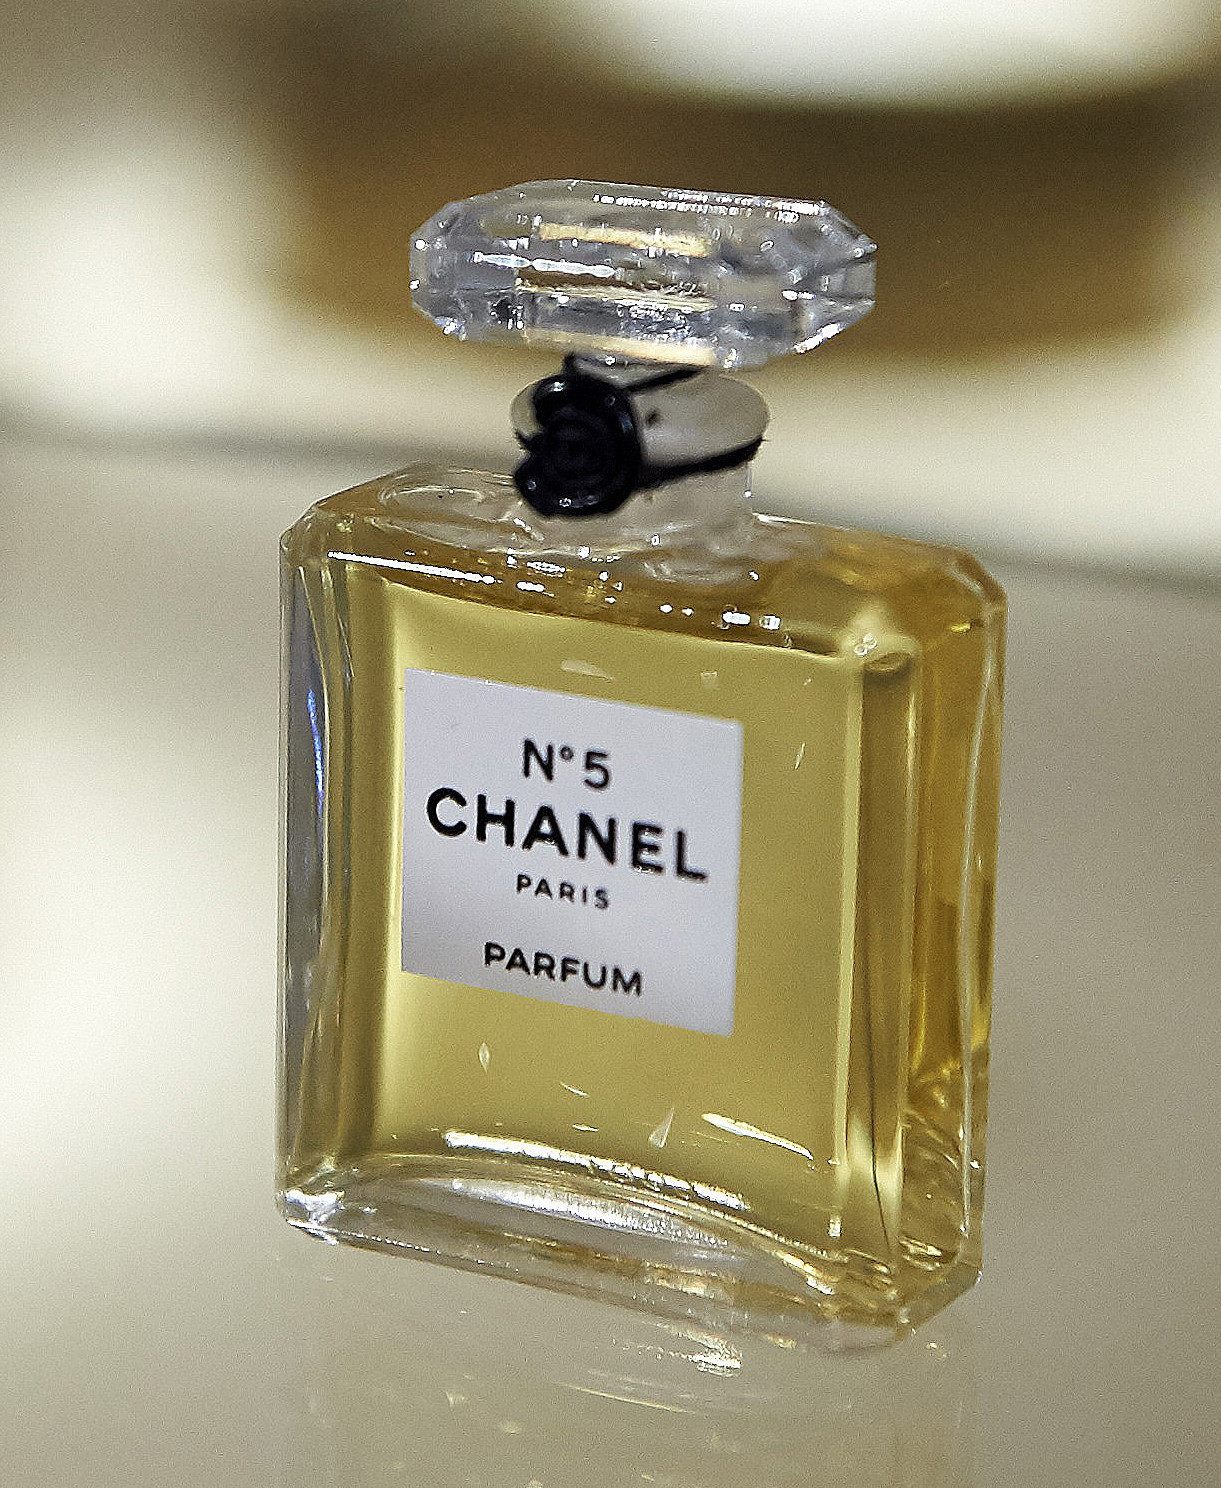 Chanel No. 5 perfume threatened by train crossing flower fields - Chicago Tribune